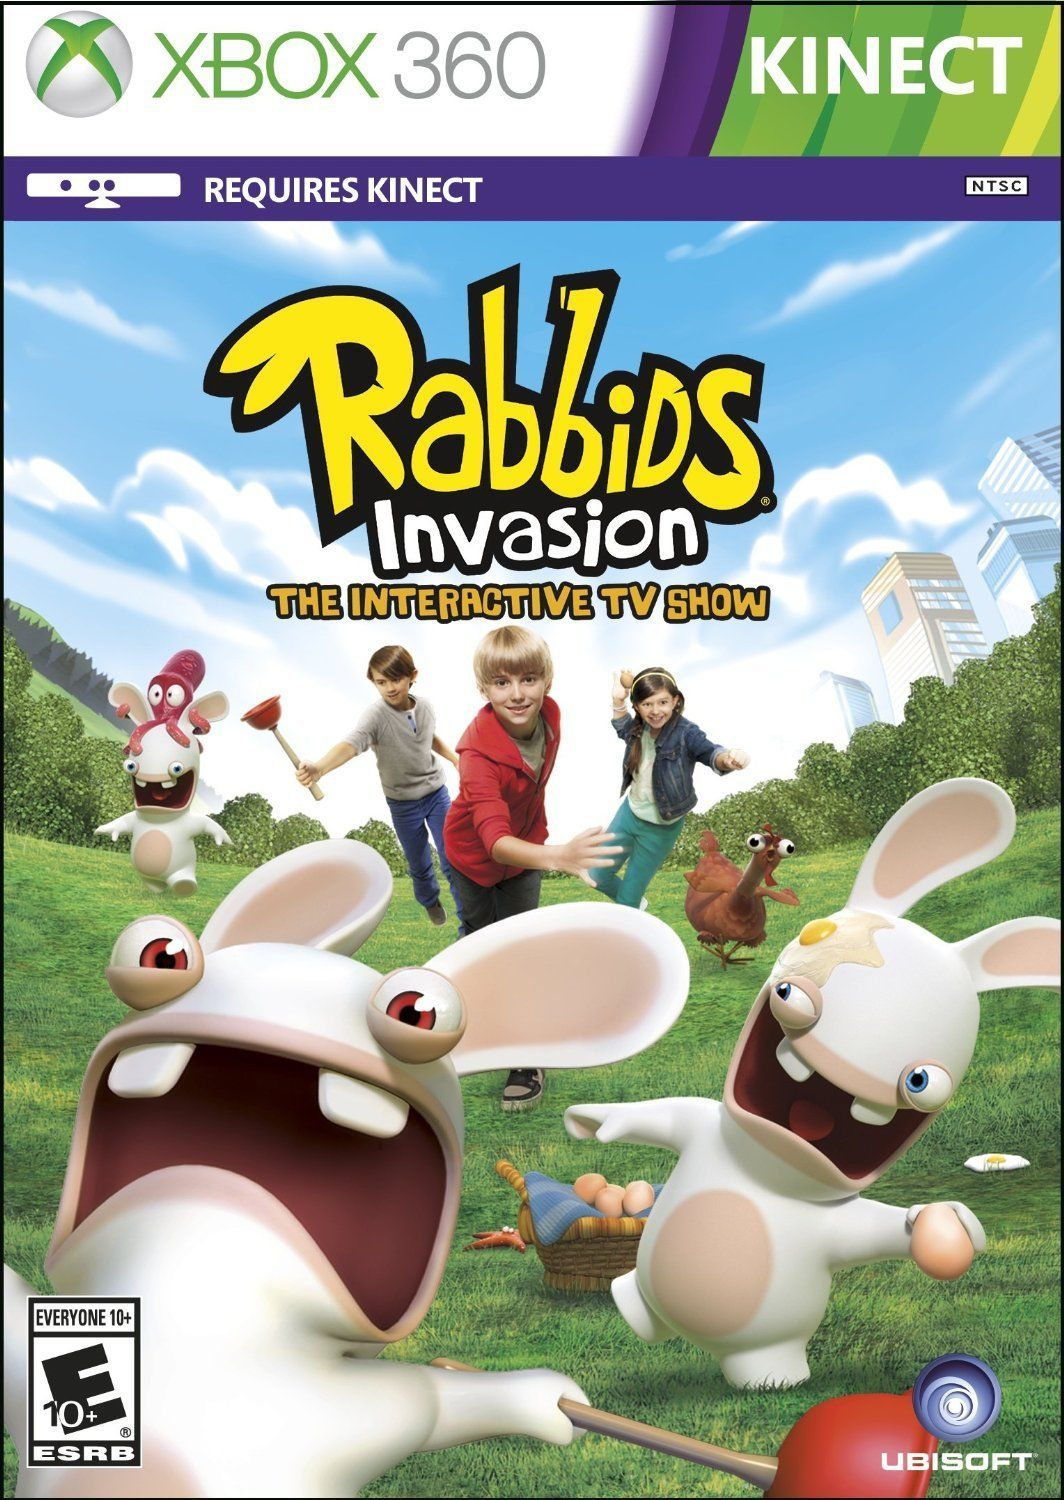 XBOX 360  Rabbids Invasion Game BRAND NEW SEALED https://t.co/H1hQTptshl https://t.co/8AhRQL56CE